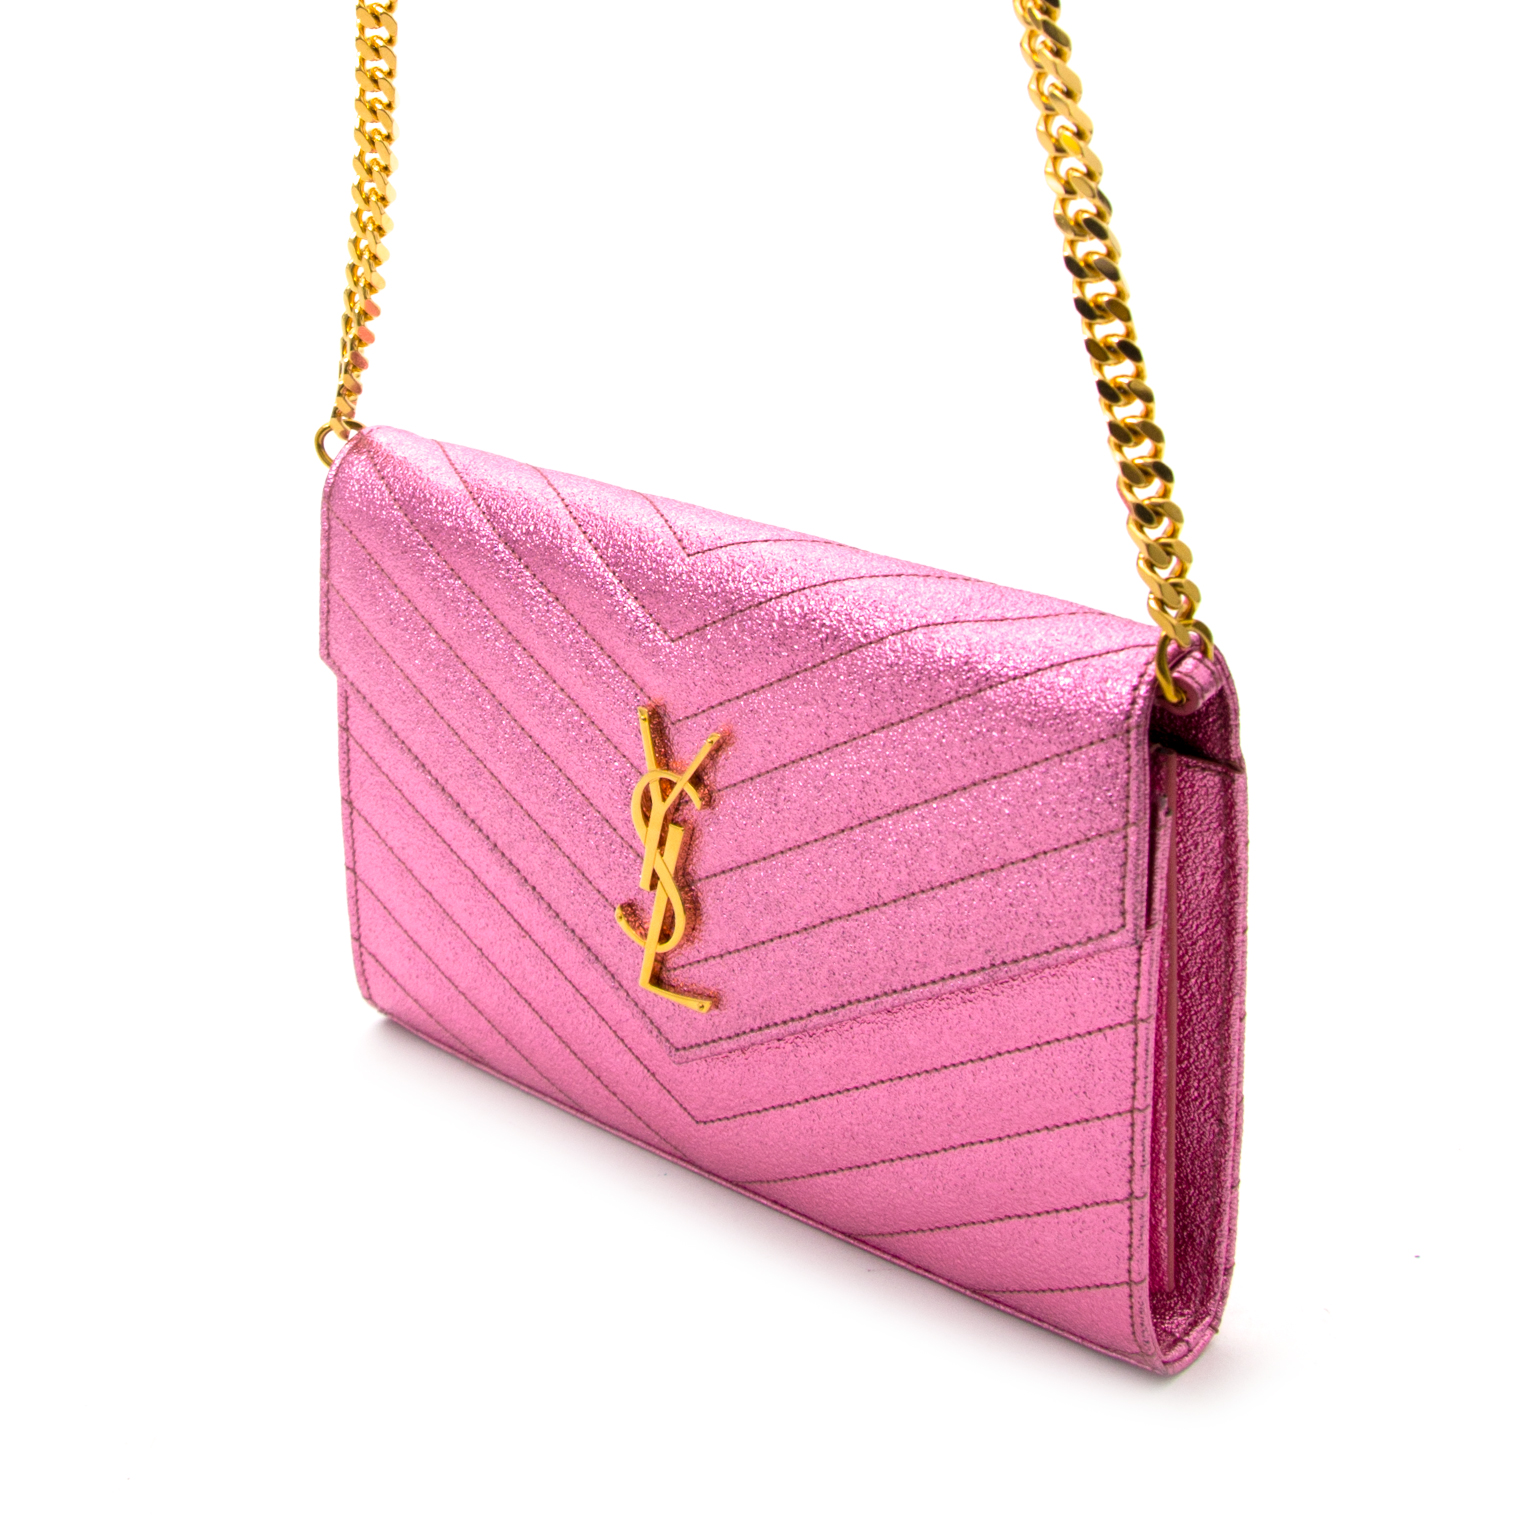 456075efa60d ... Shop safe and secure online at labellov.com Saint Laurent Pink Textured  Metallic Chain Wallet